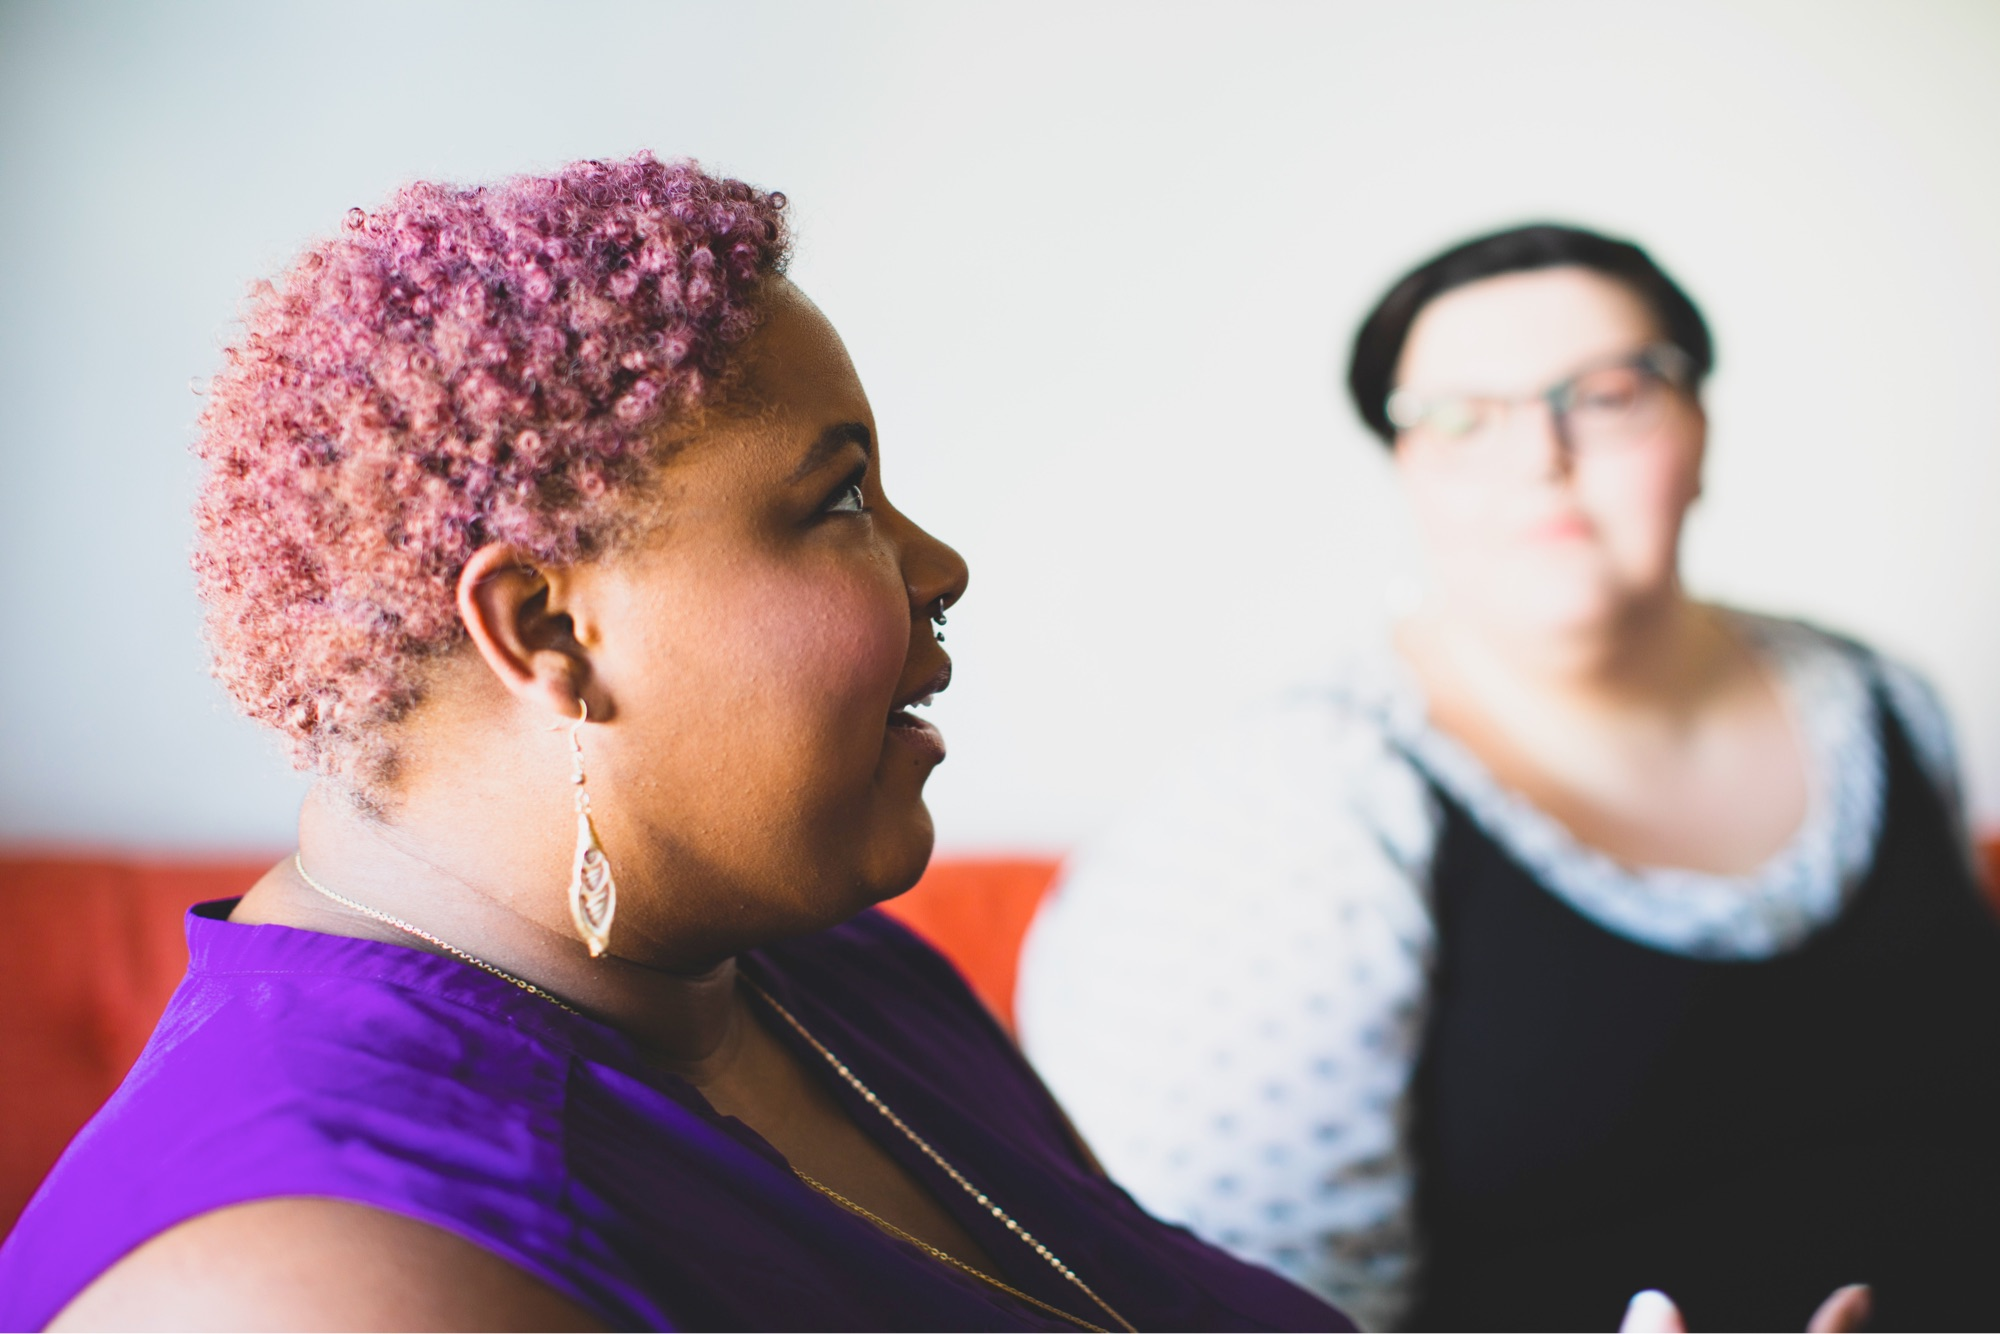 Black femme with short pink hair taking to other person